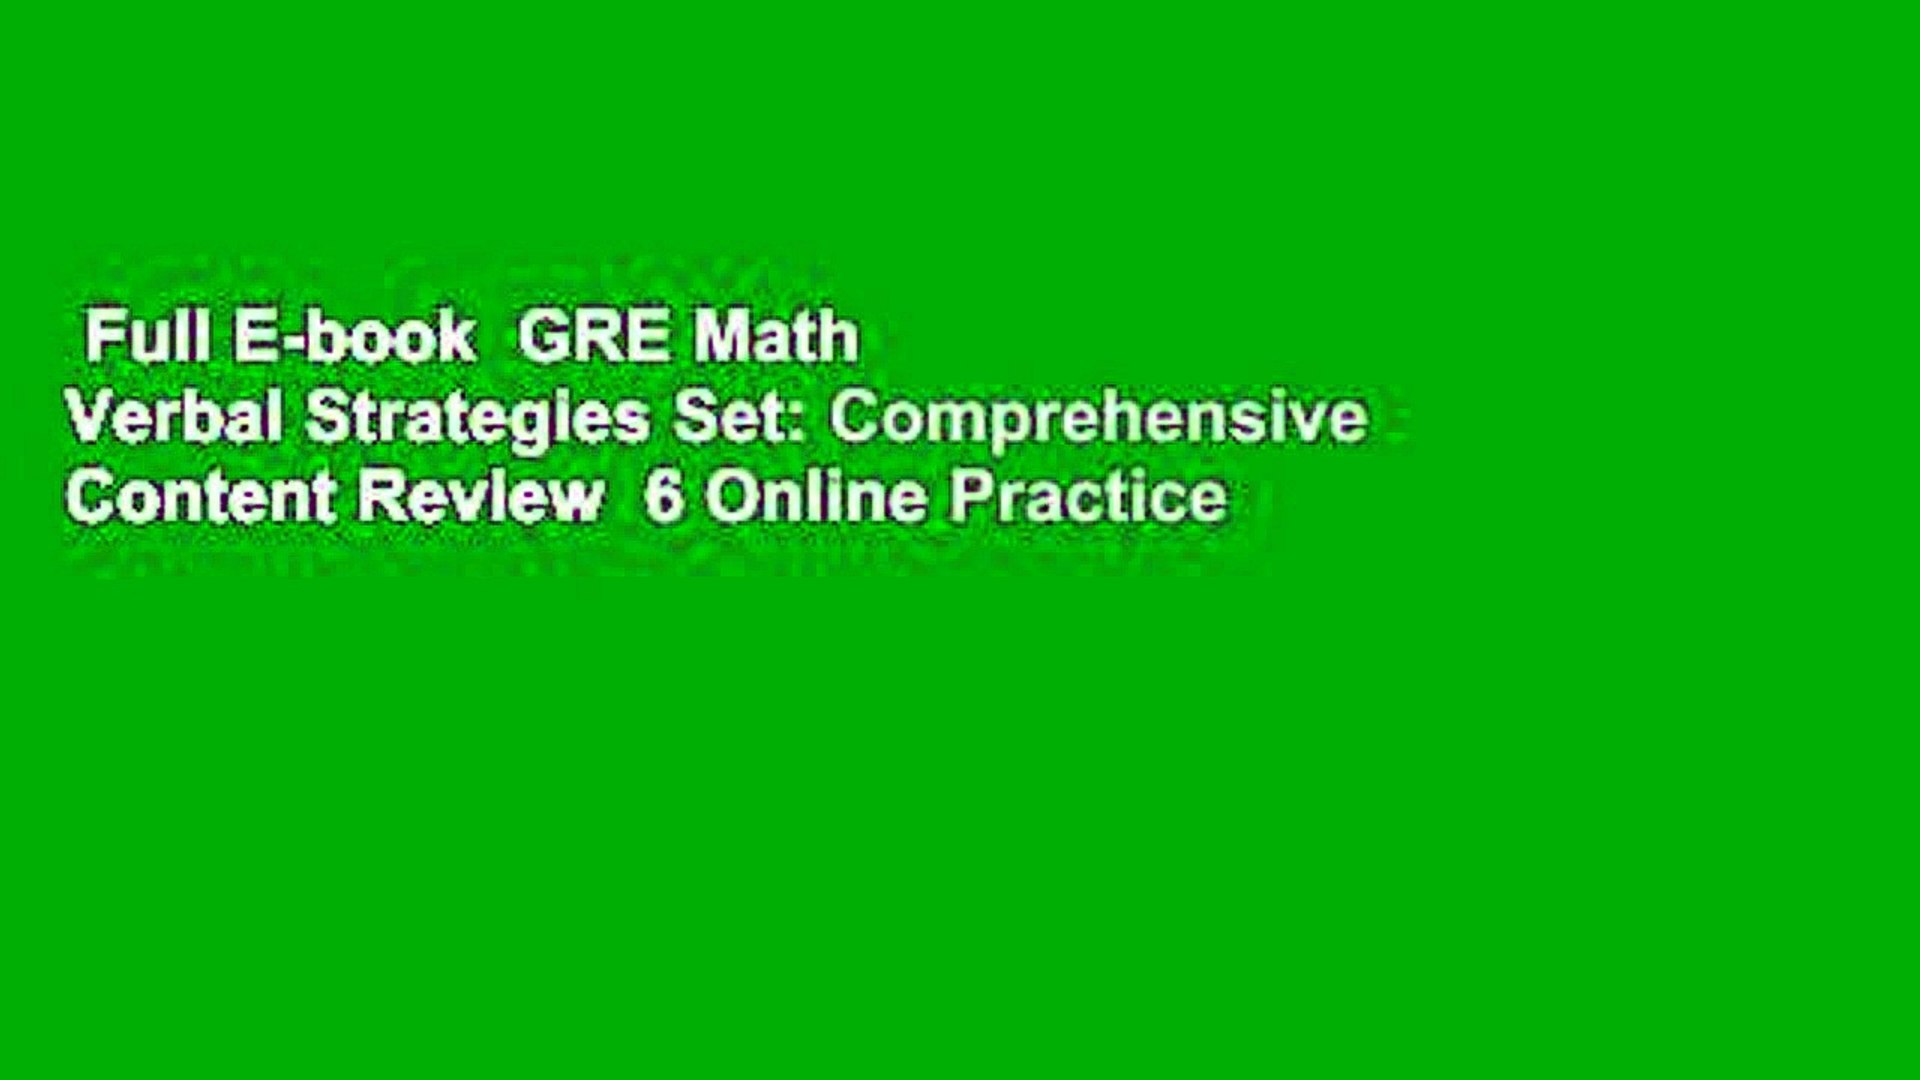 Effective Strategies /& 6 Online Practice Tests from 99th Percentile Instructors GRE Math /& Verbal Strategies Set